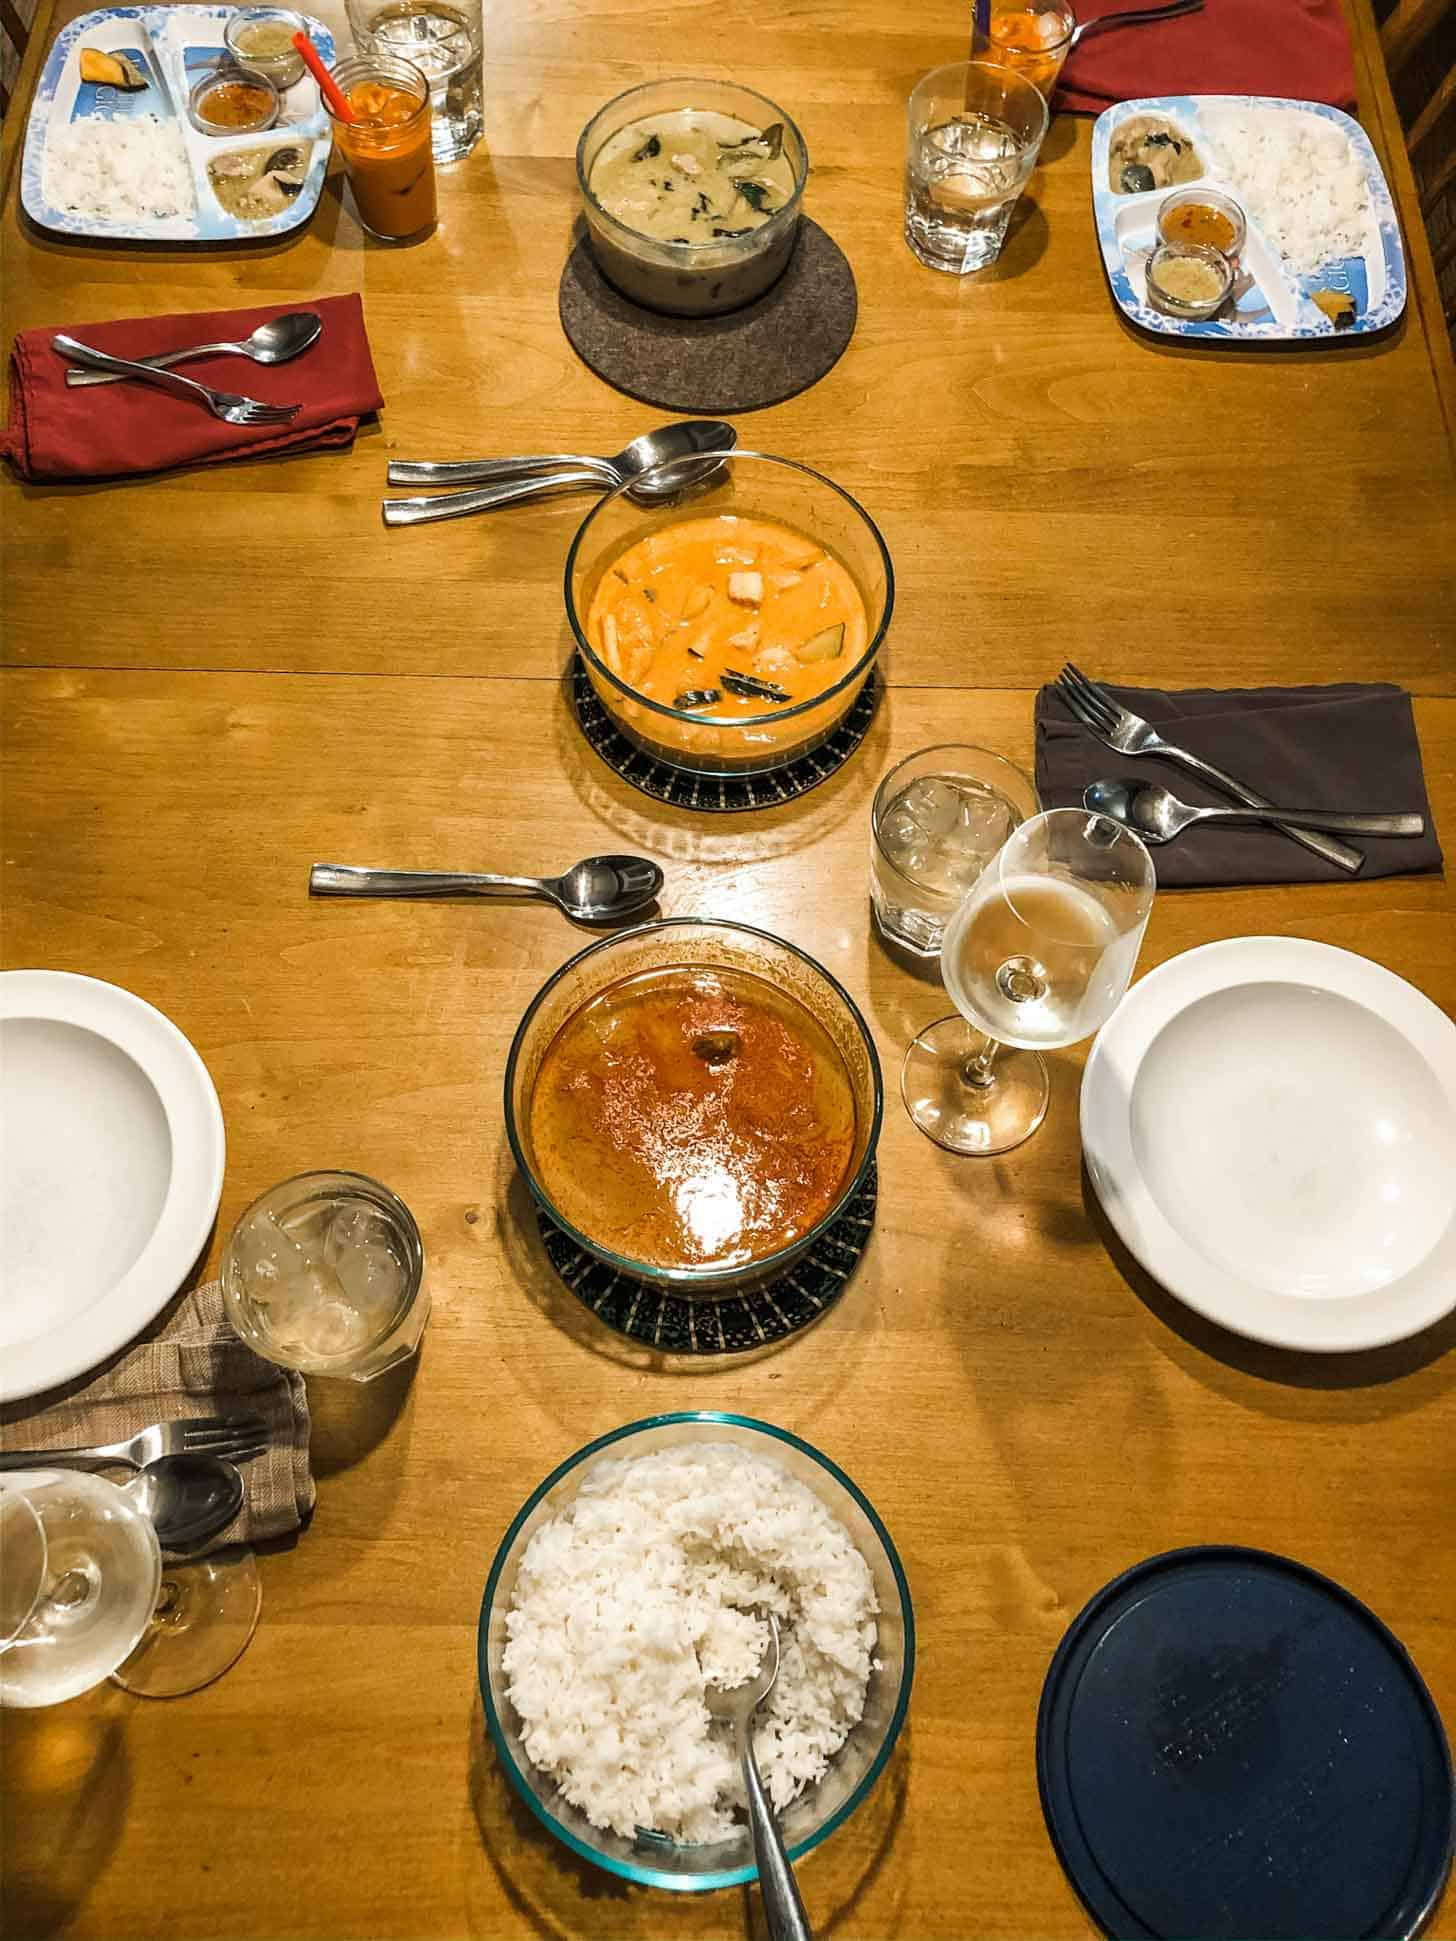 3 bowls of thai curries and rice on a table